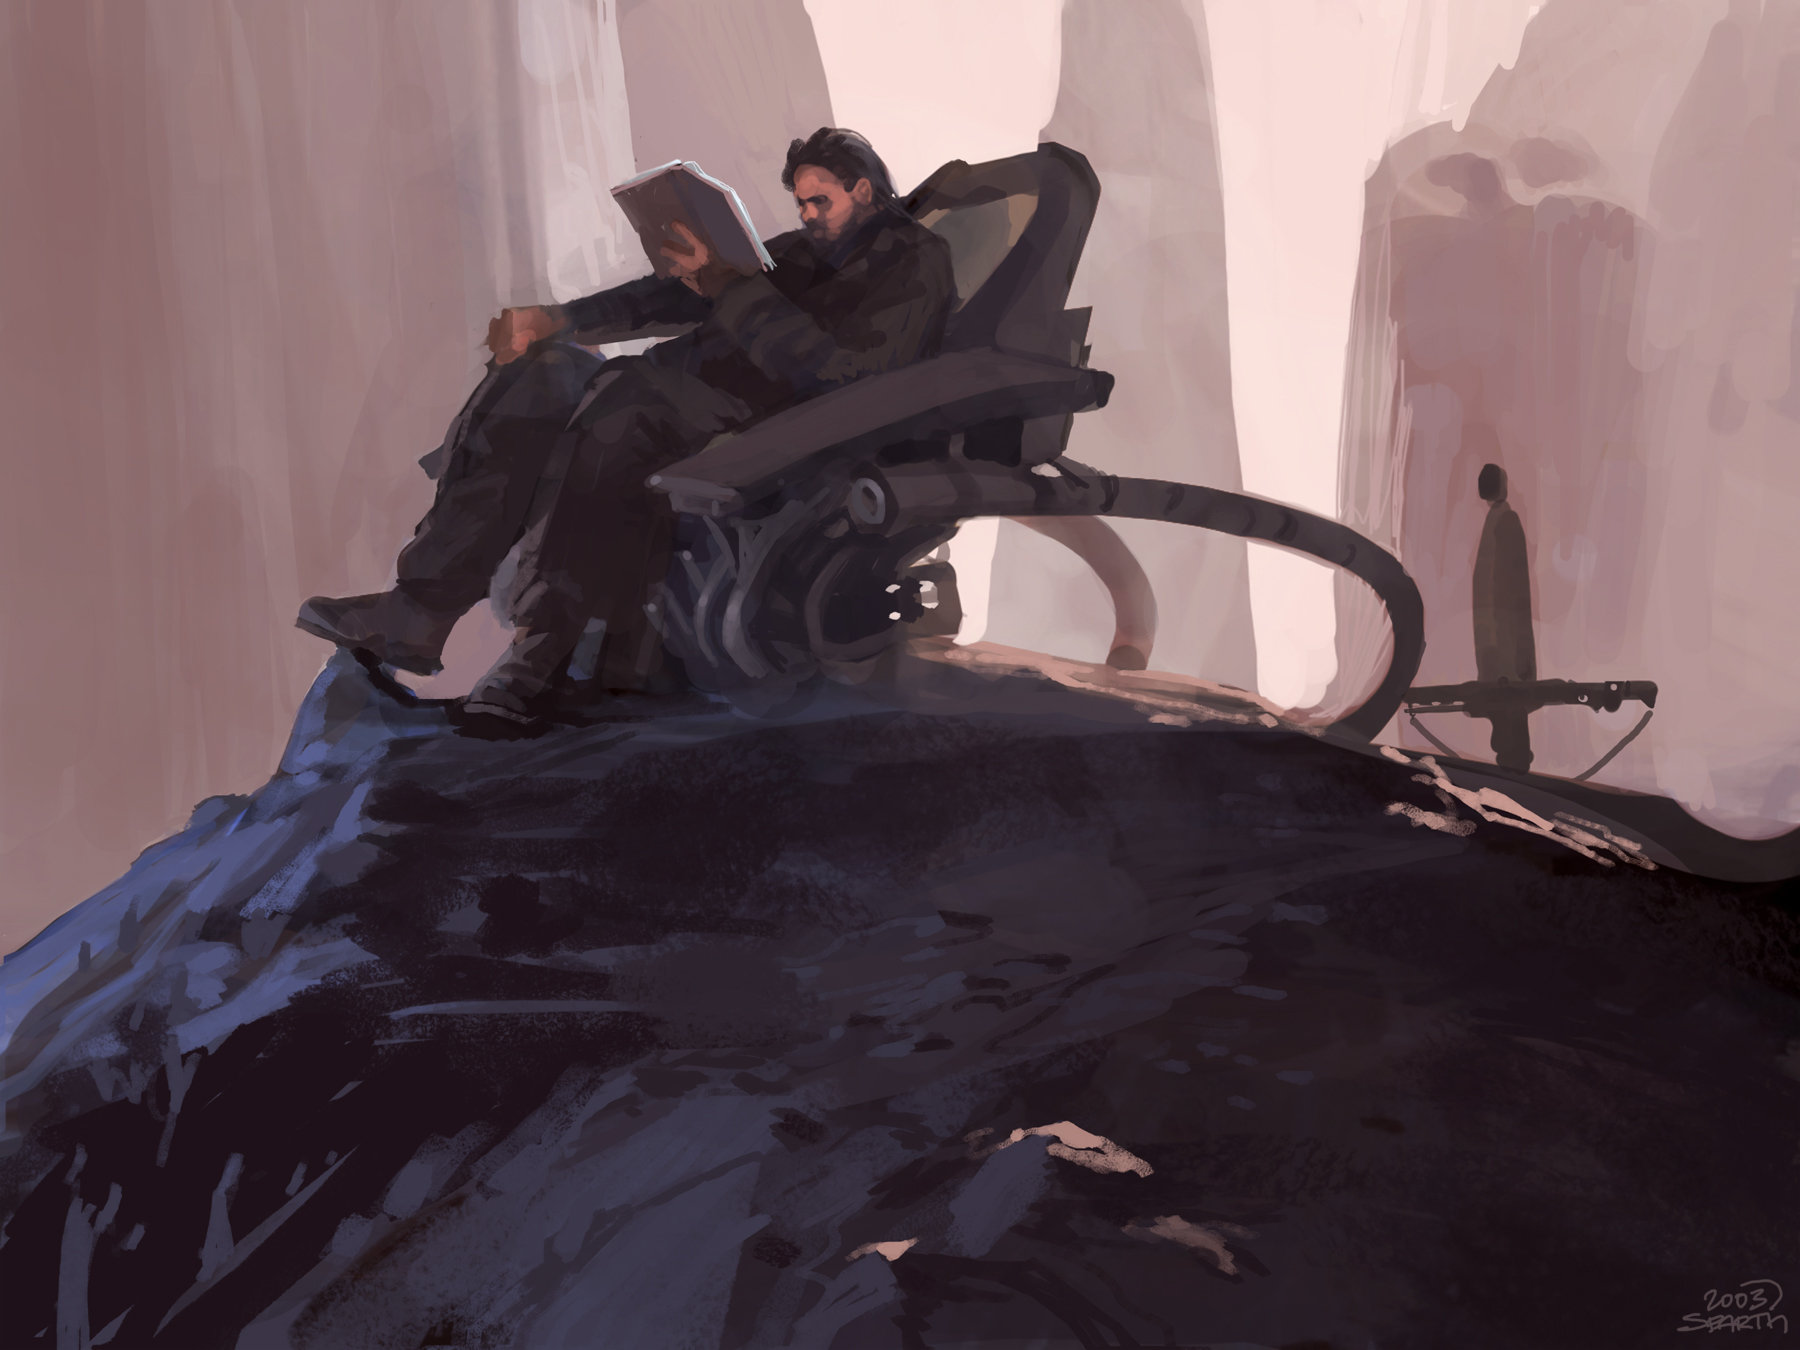 Sparth man seated